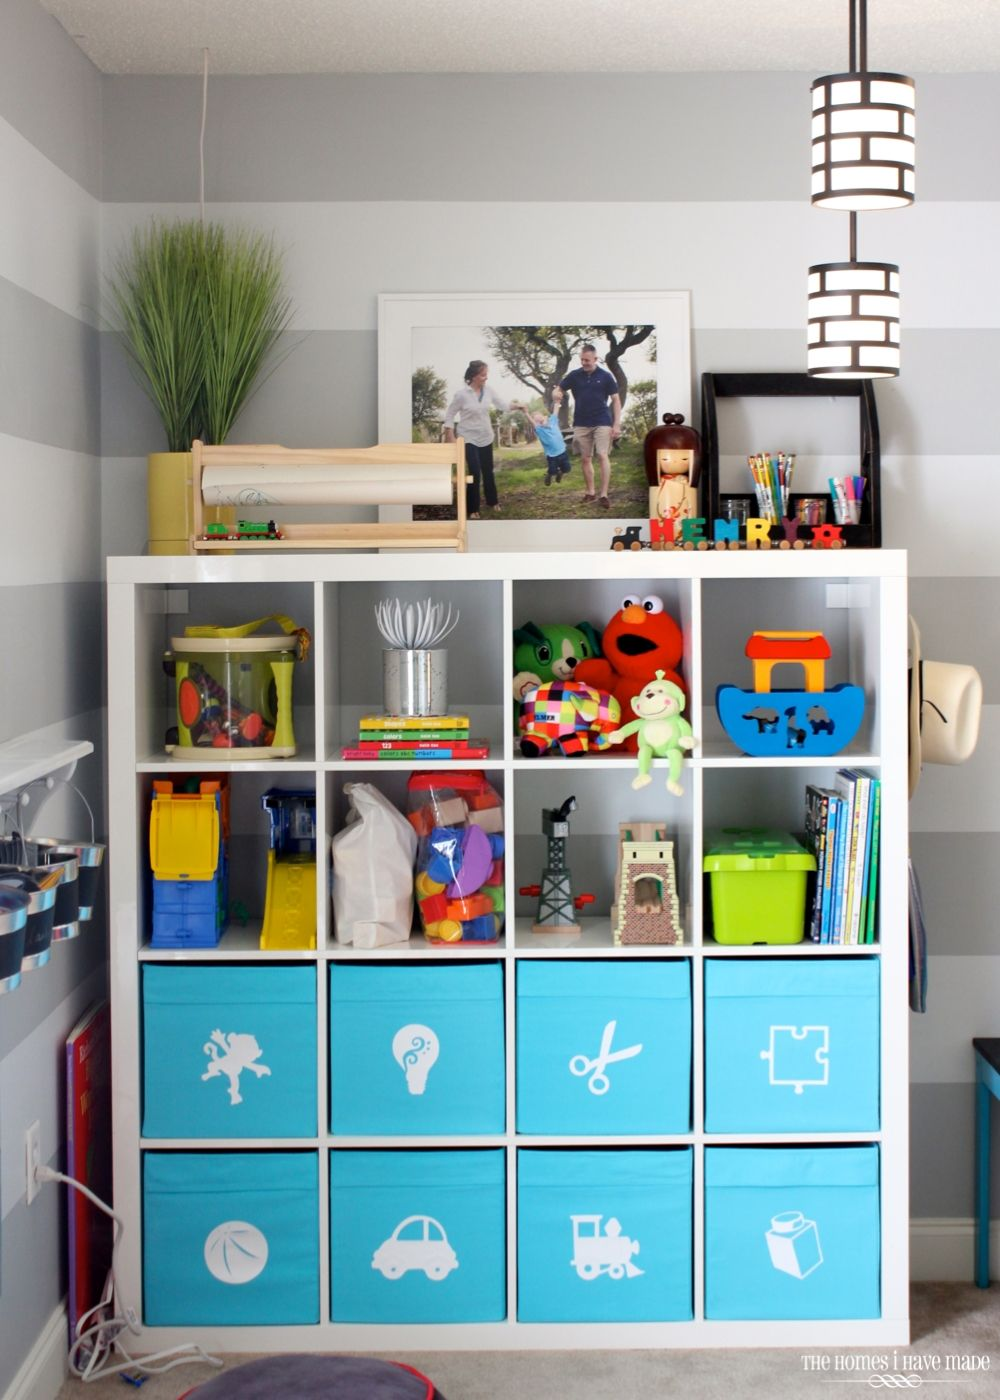 Toy Storage In An Ikea Expedit The Homes I Have Made Ikea Toy Storage Ikea Toys Toy Storage